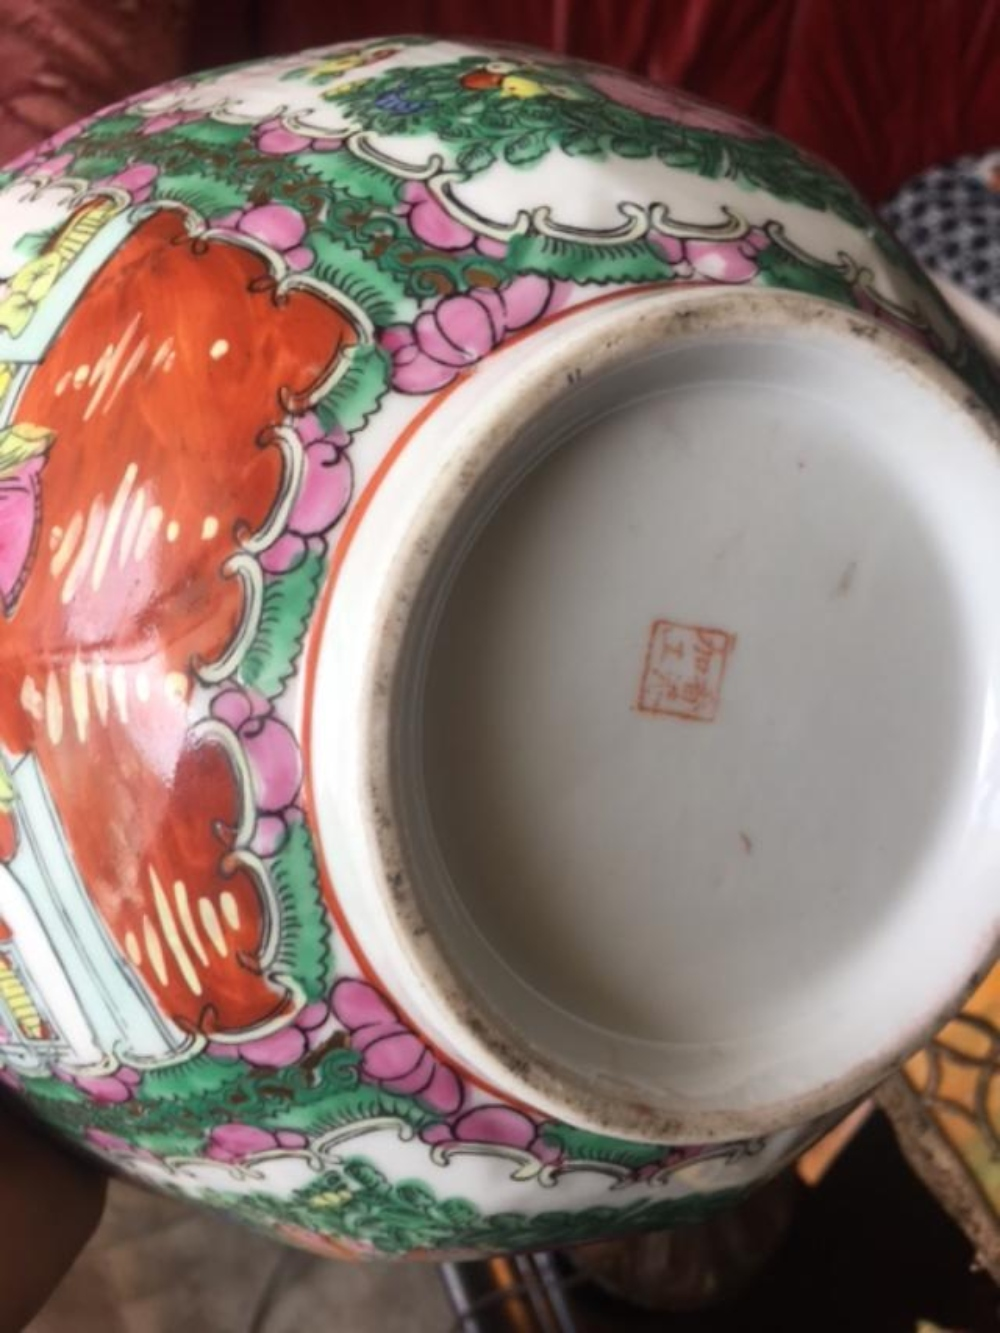 Lot 158: Antique Chinese Famille Verte Porcelain Scalloped Edge Scenery Footed Bowl Dish